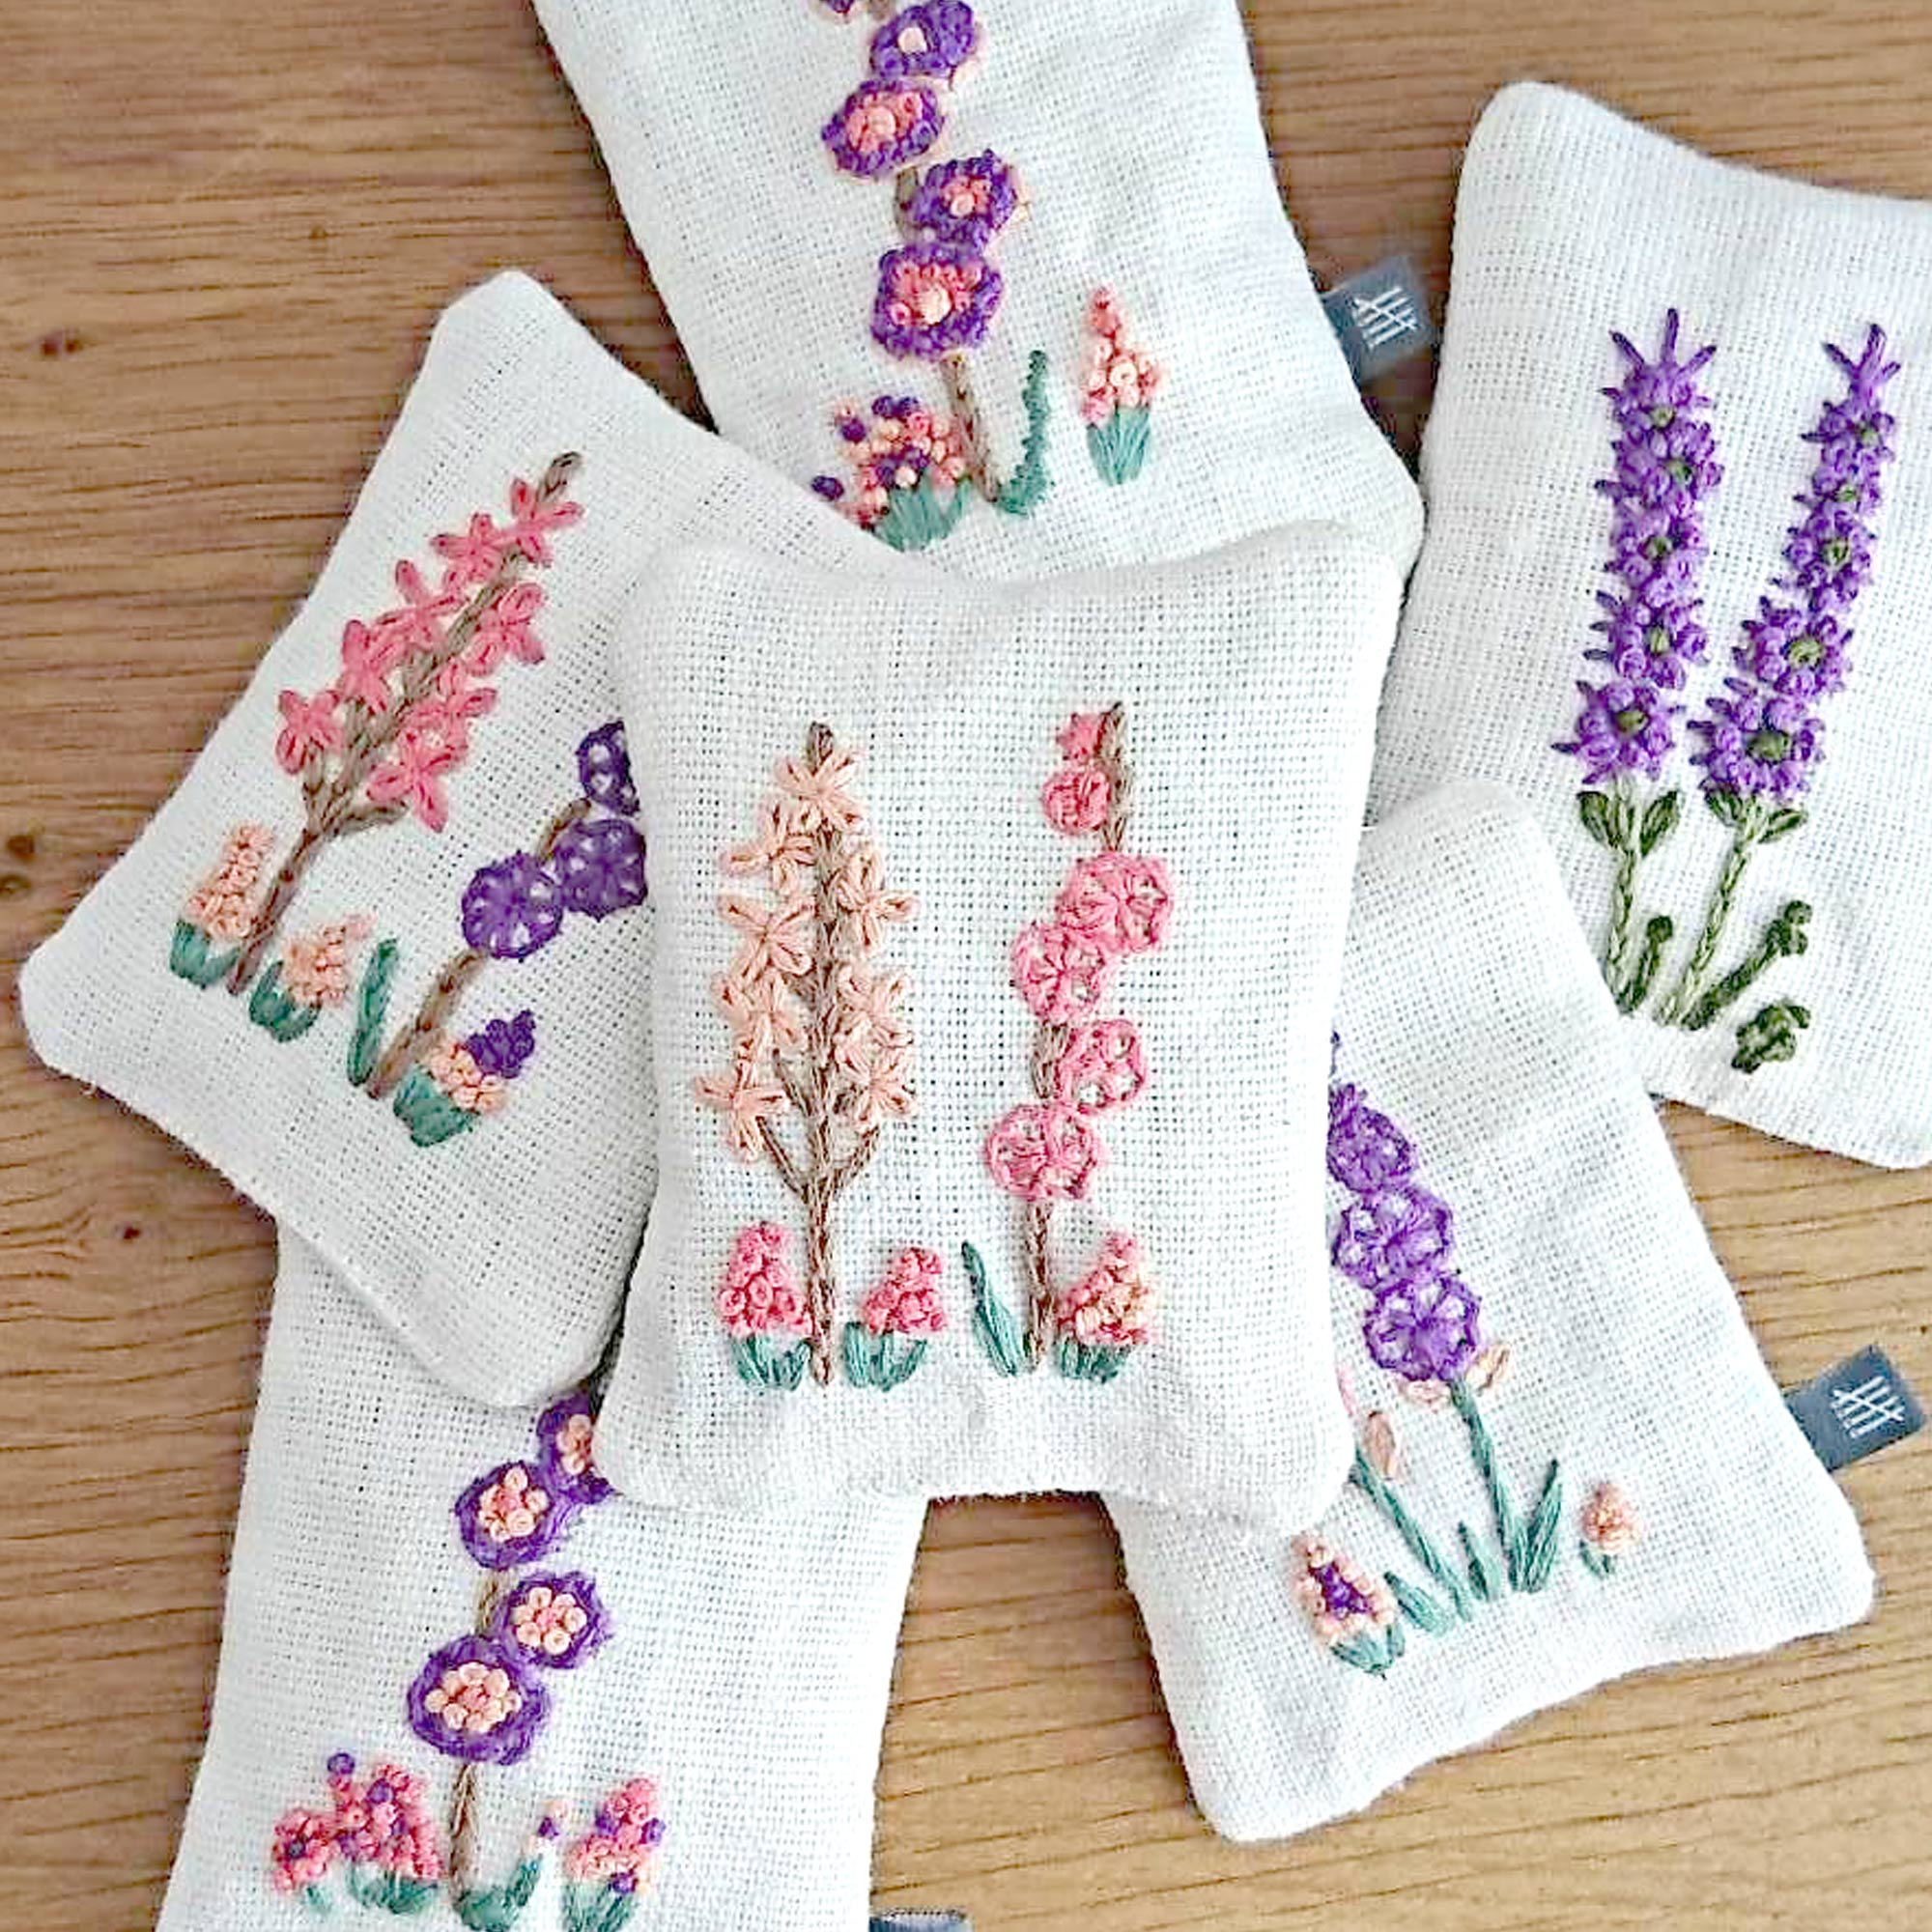 Fine Cell Work Hand Embroidered Hollyhocks Floral Embroidered Lavender Bag